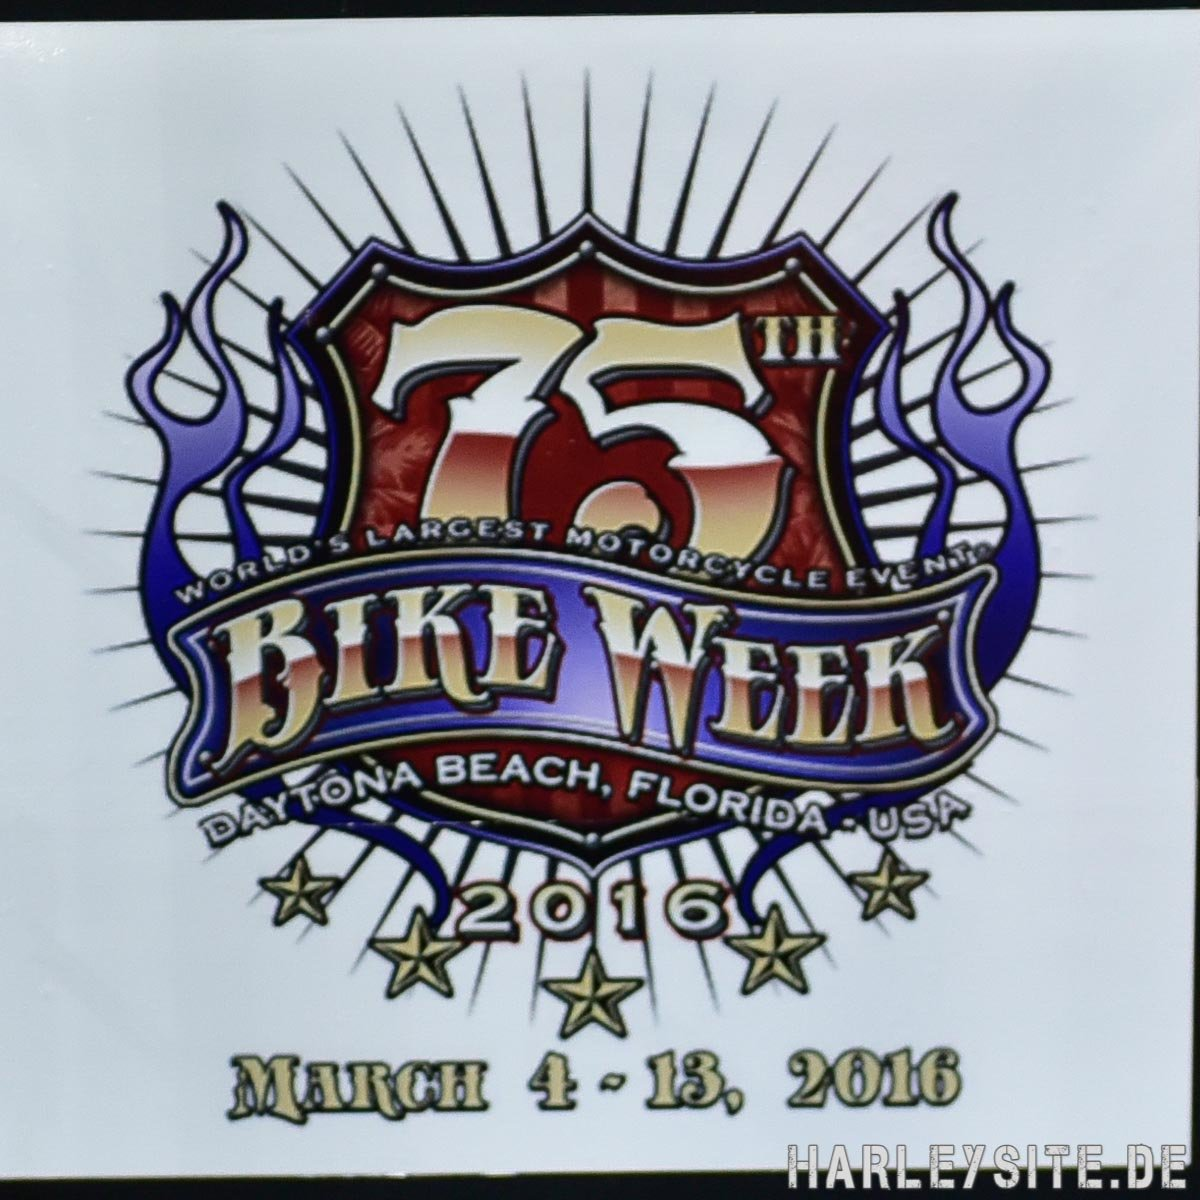 -Daytona-Bike-Week-5537